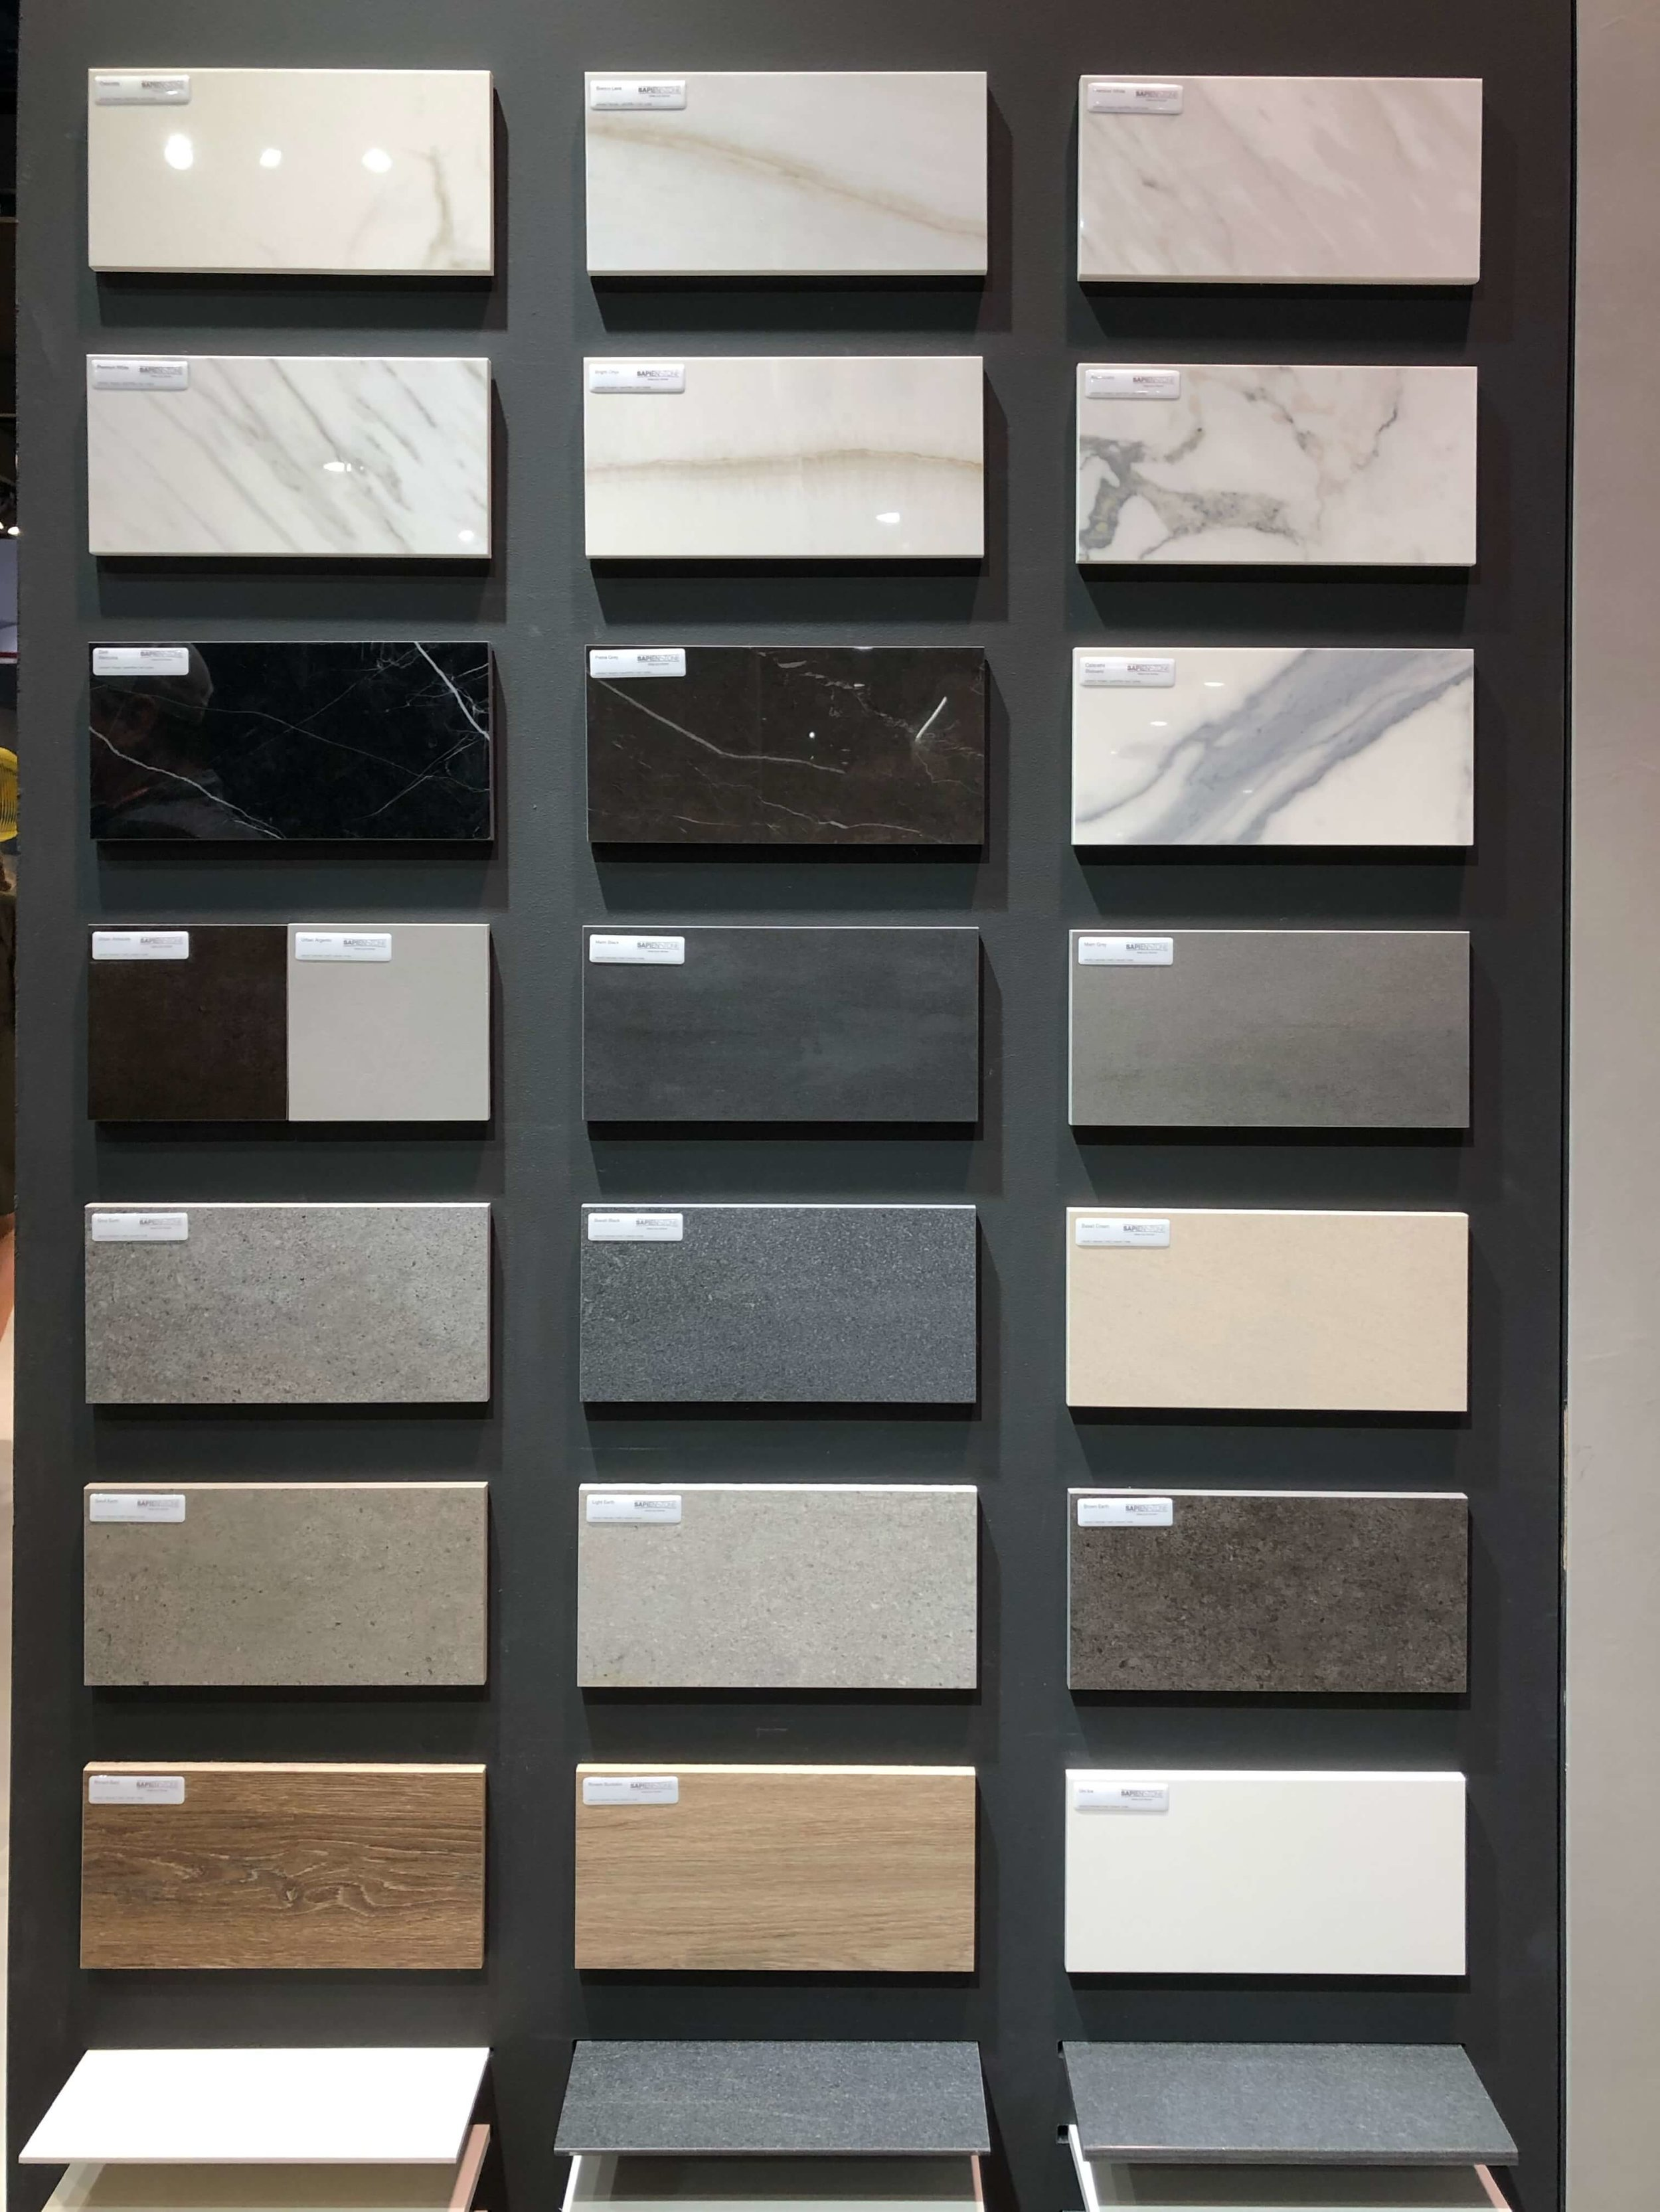 Wall of samples of Sapienstone porcelain slabs | KBIS 2019 Surfaces Trends